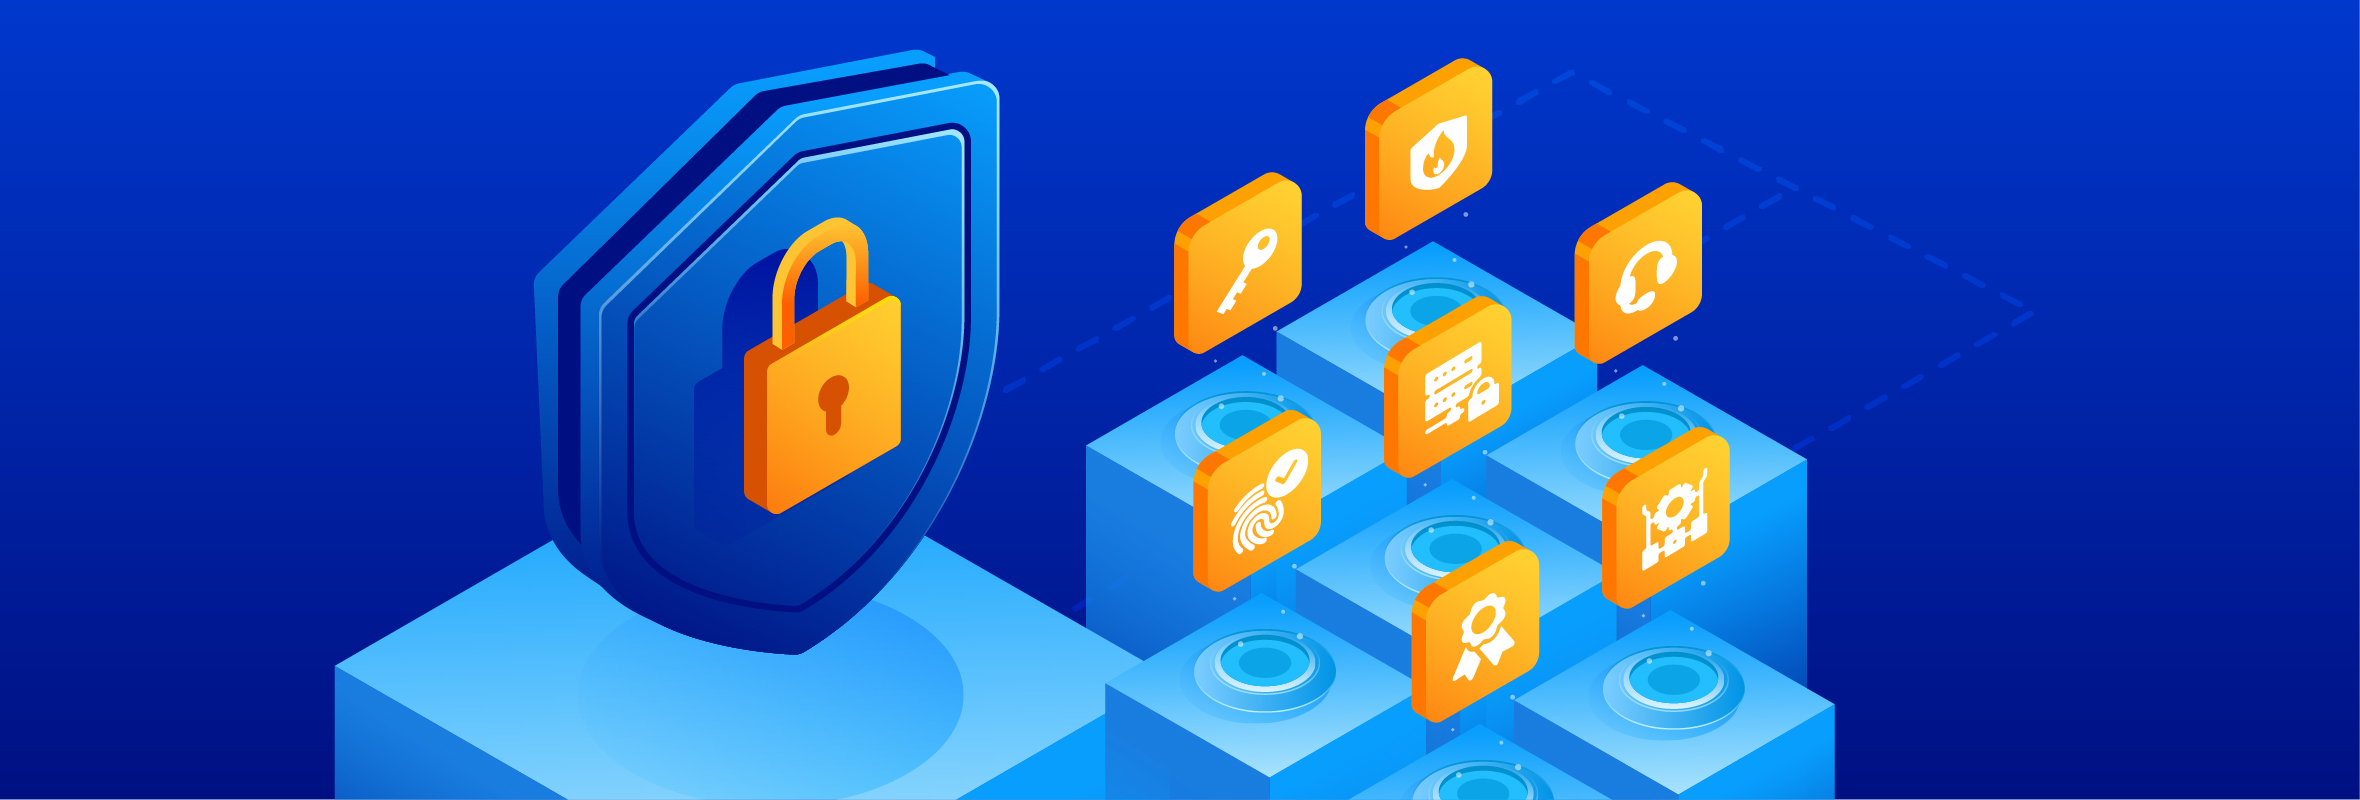 Protecting your sensitive information through secure cloud services